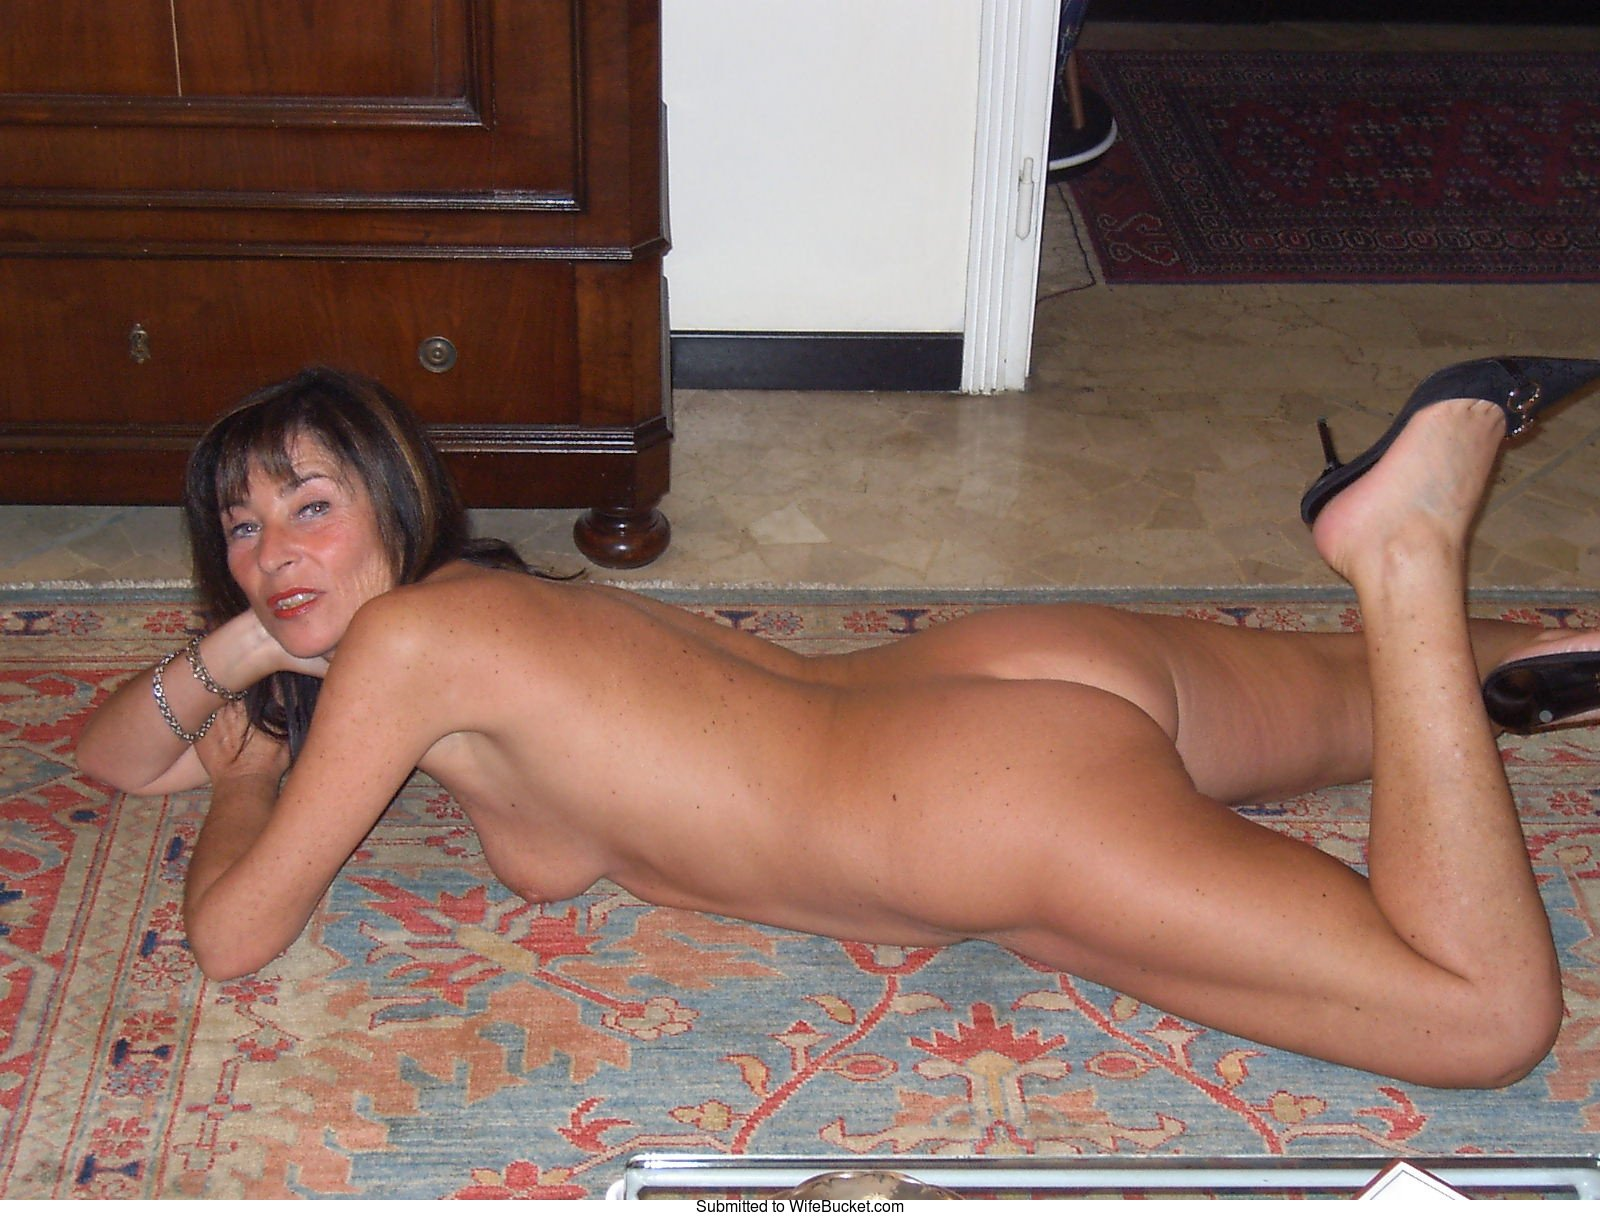 Amateur wife exposed nude